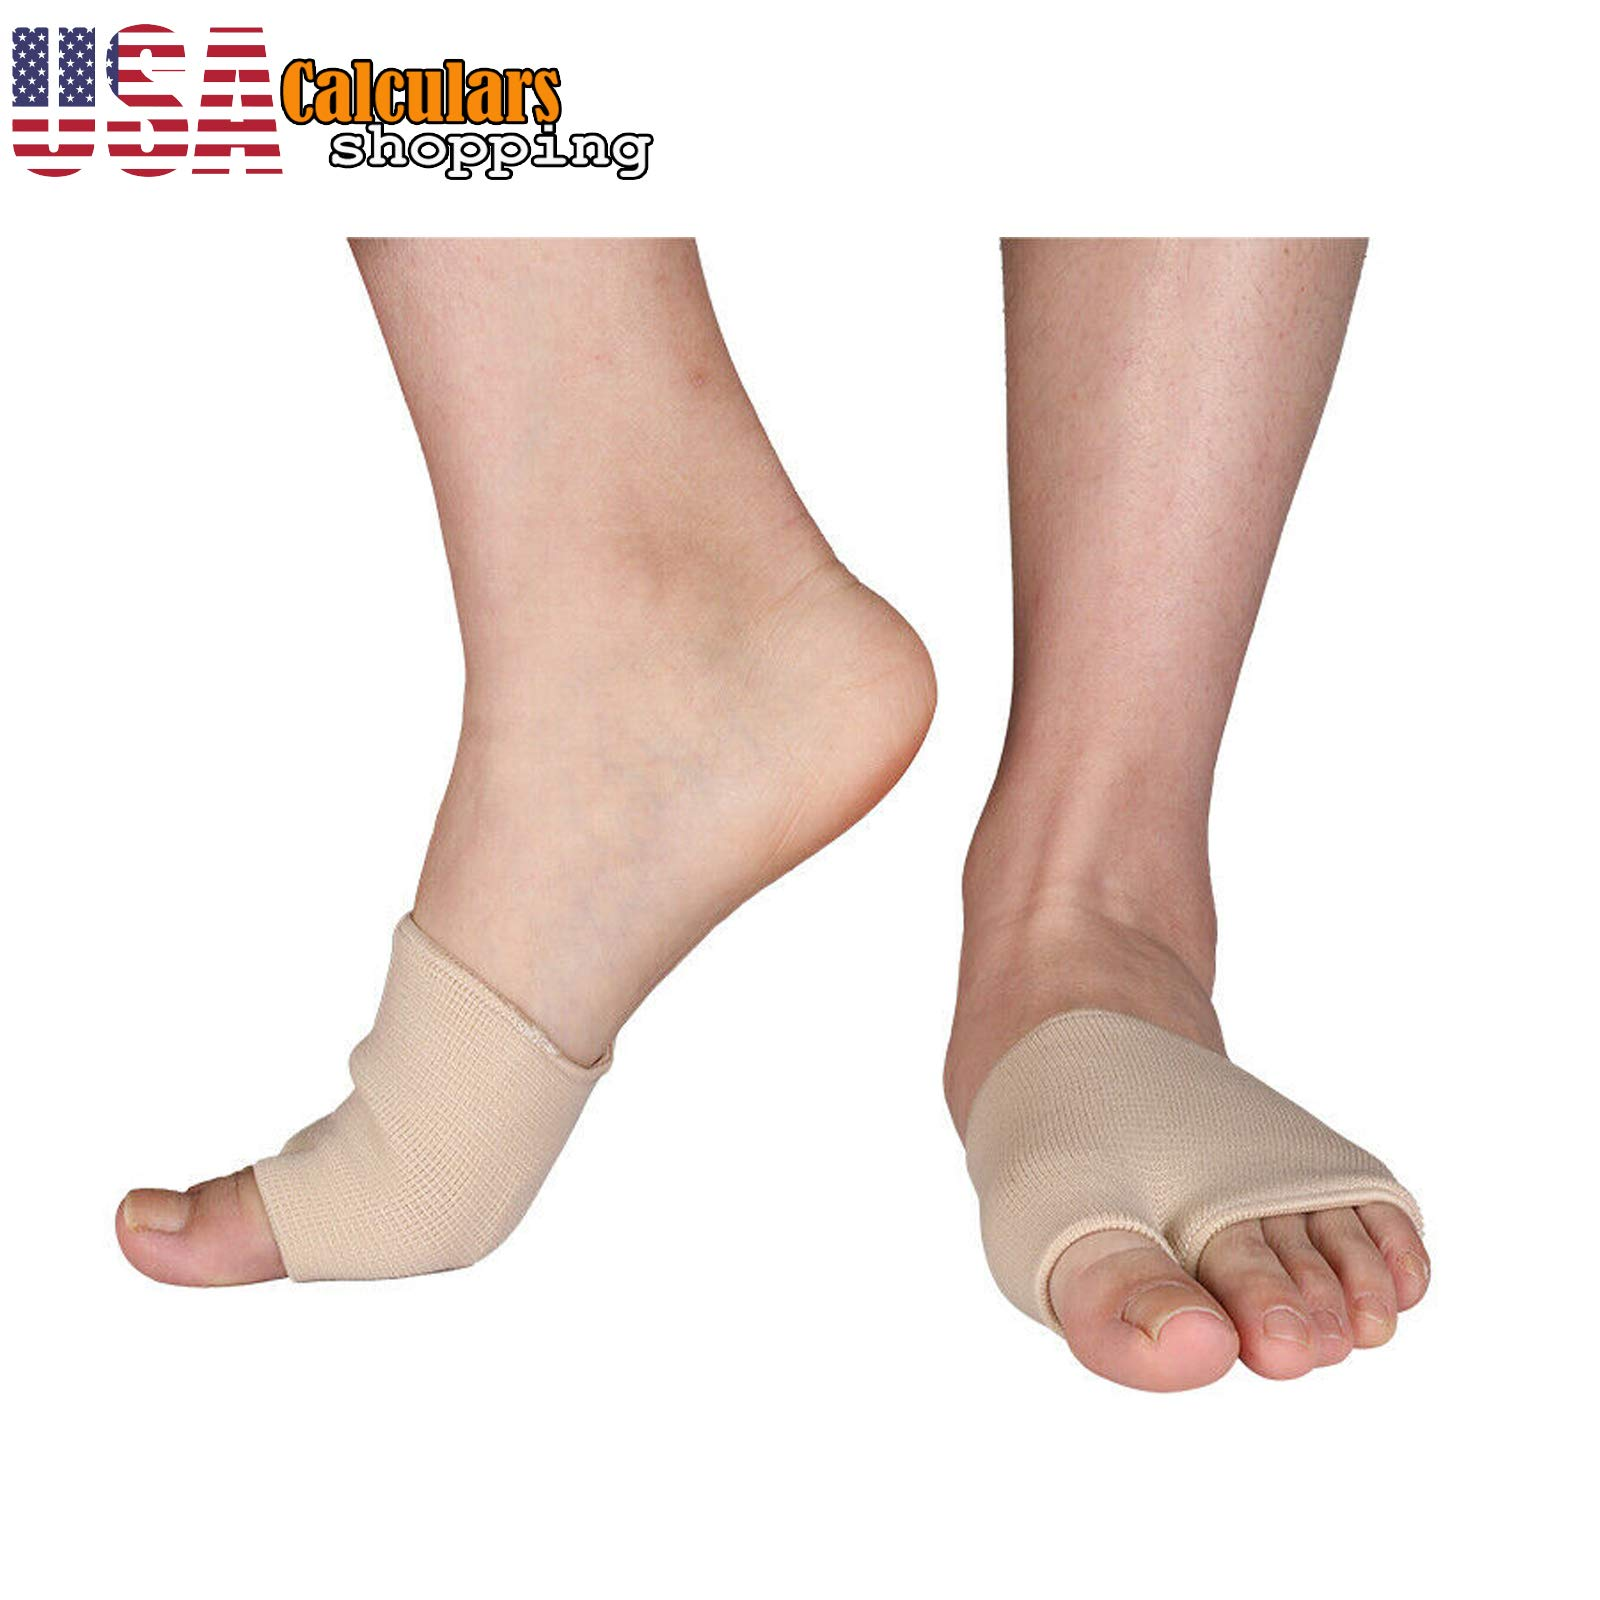 US Seller 2 Pairs Fabric Metatarsal Sleeve Ball of Foot Cushion Gel Pads for Men and Women by Calculars